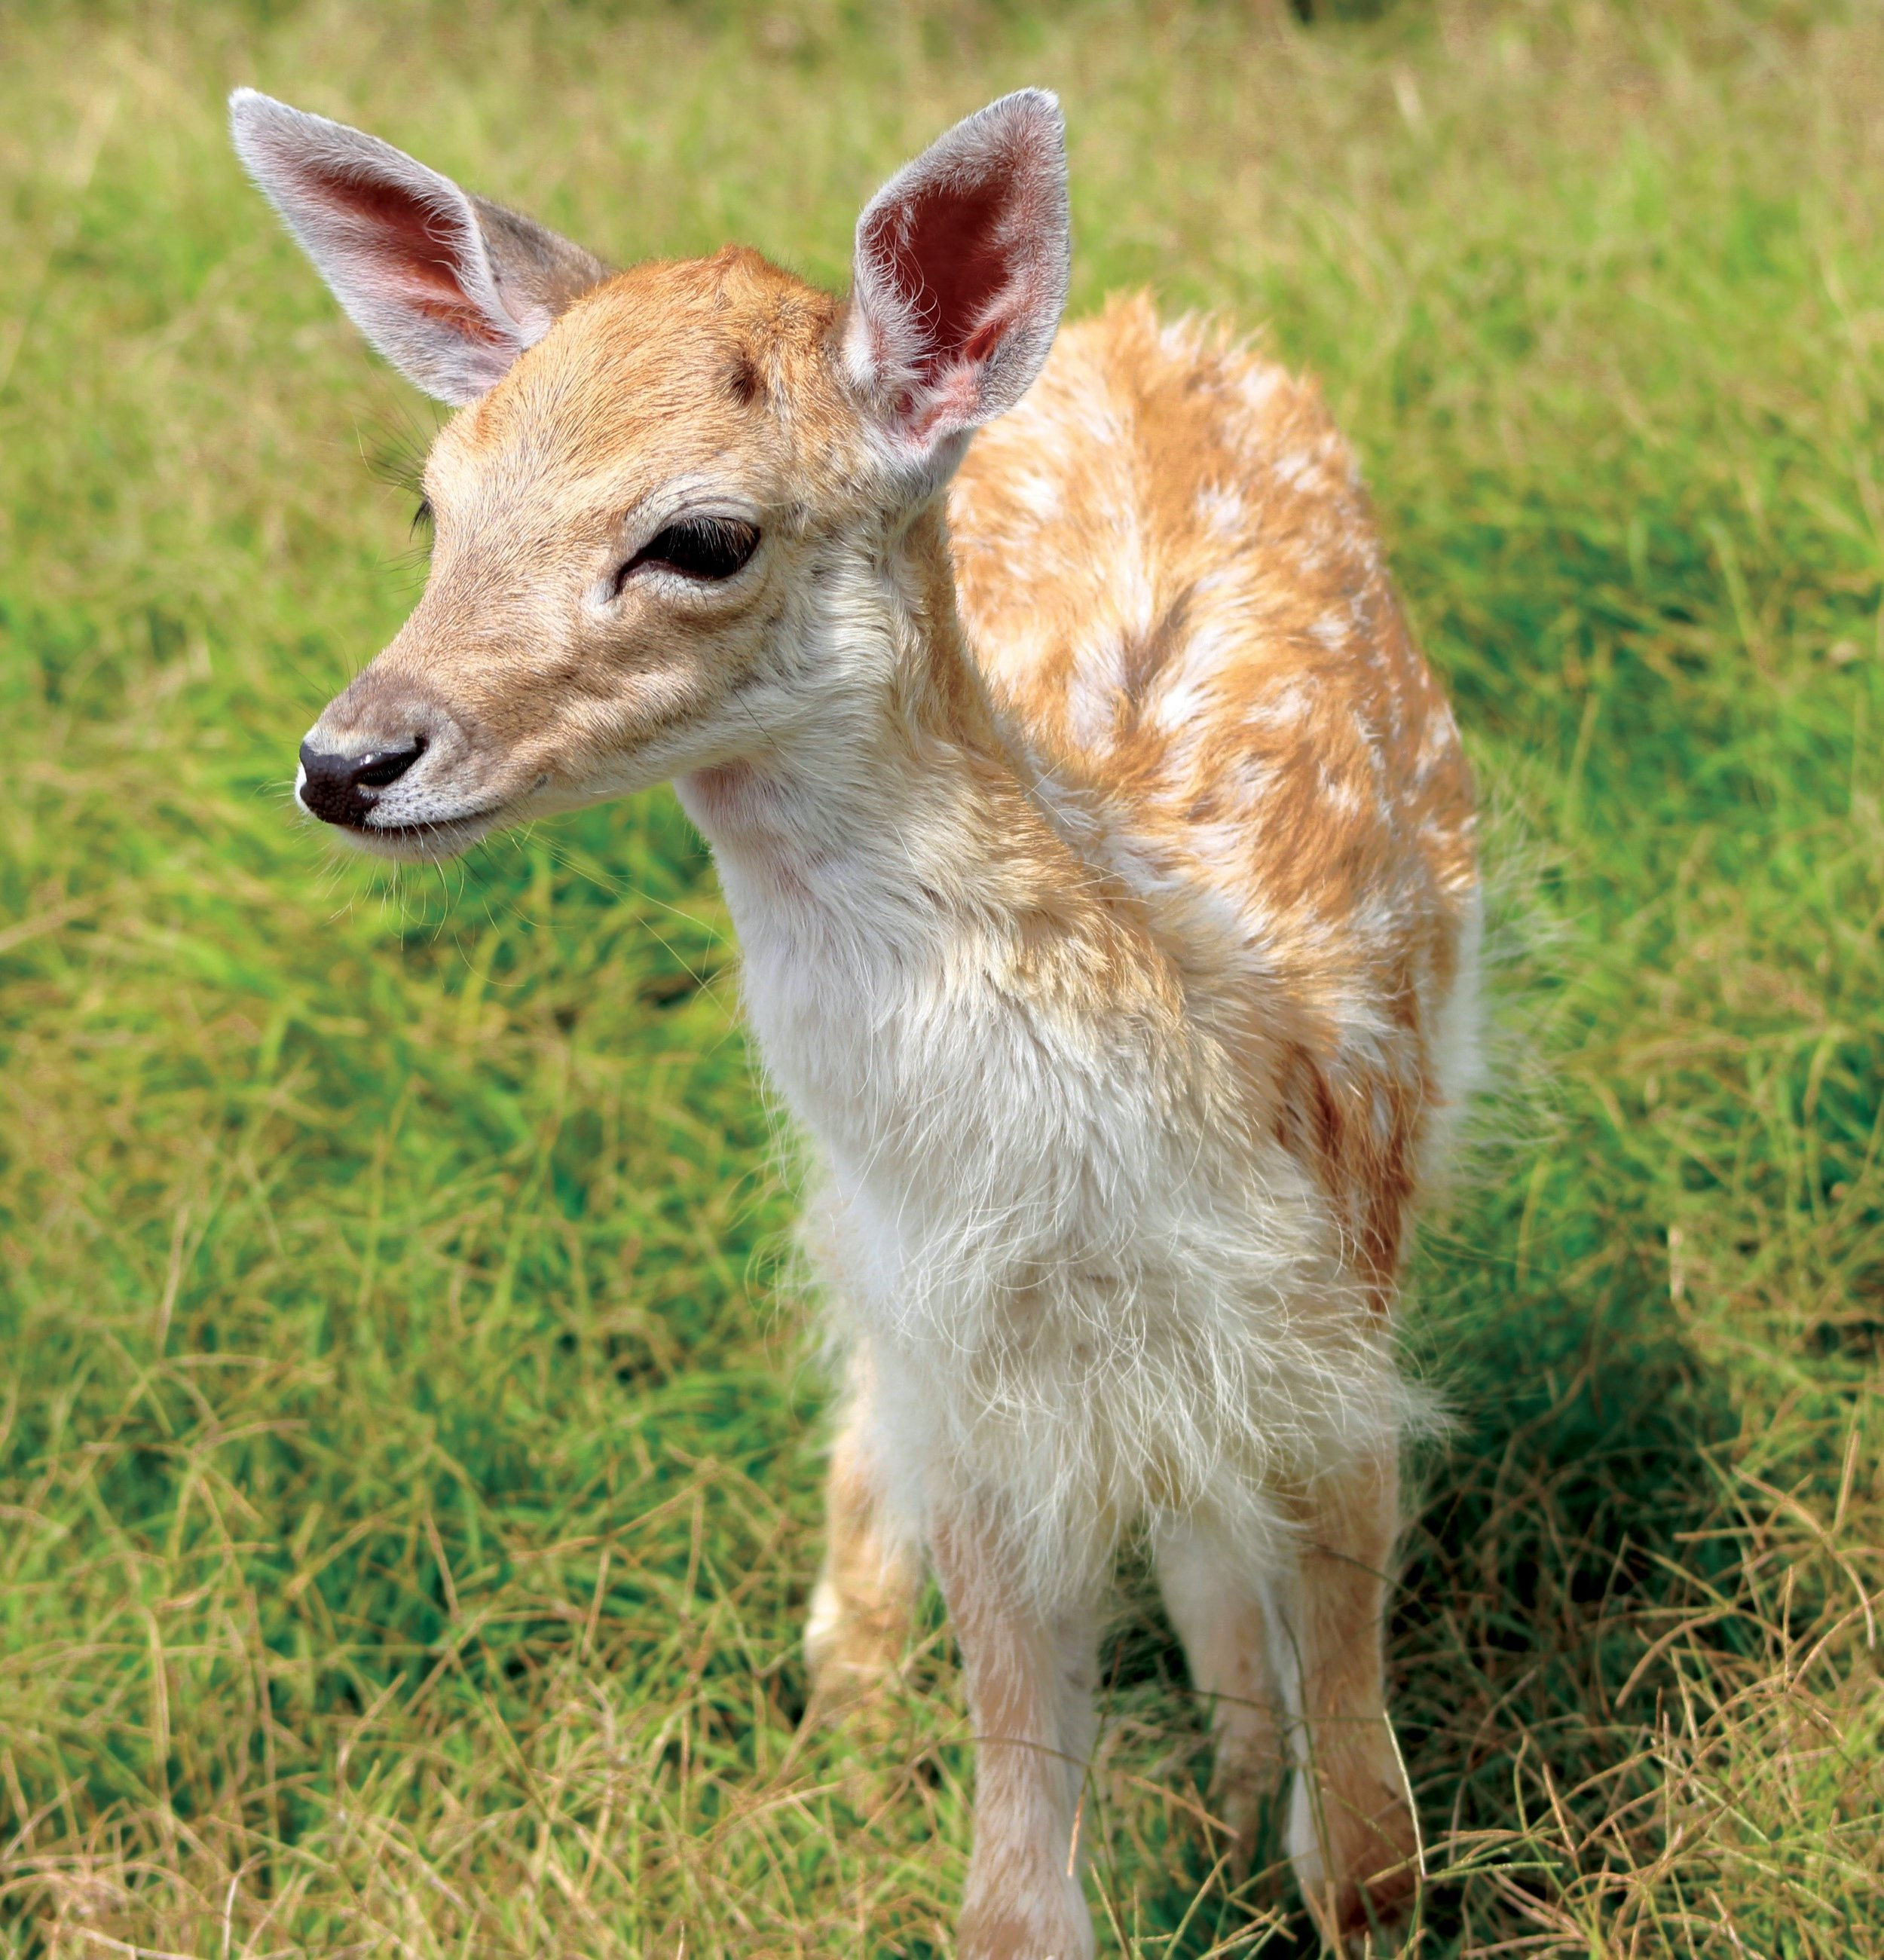 Baby animals like this fuzzy little fawn are born all the time in the park.